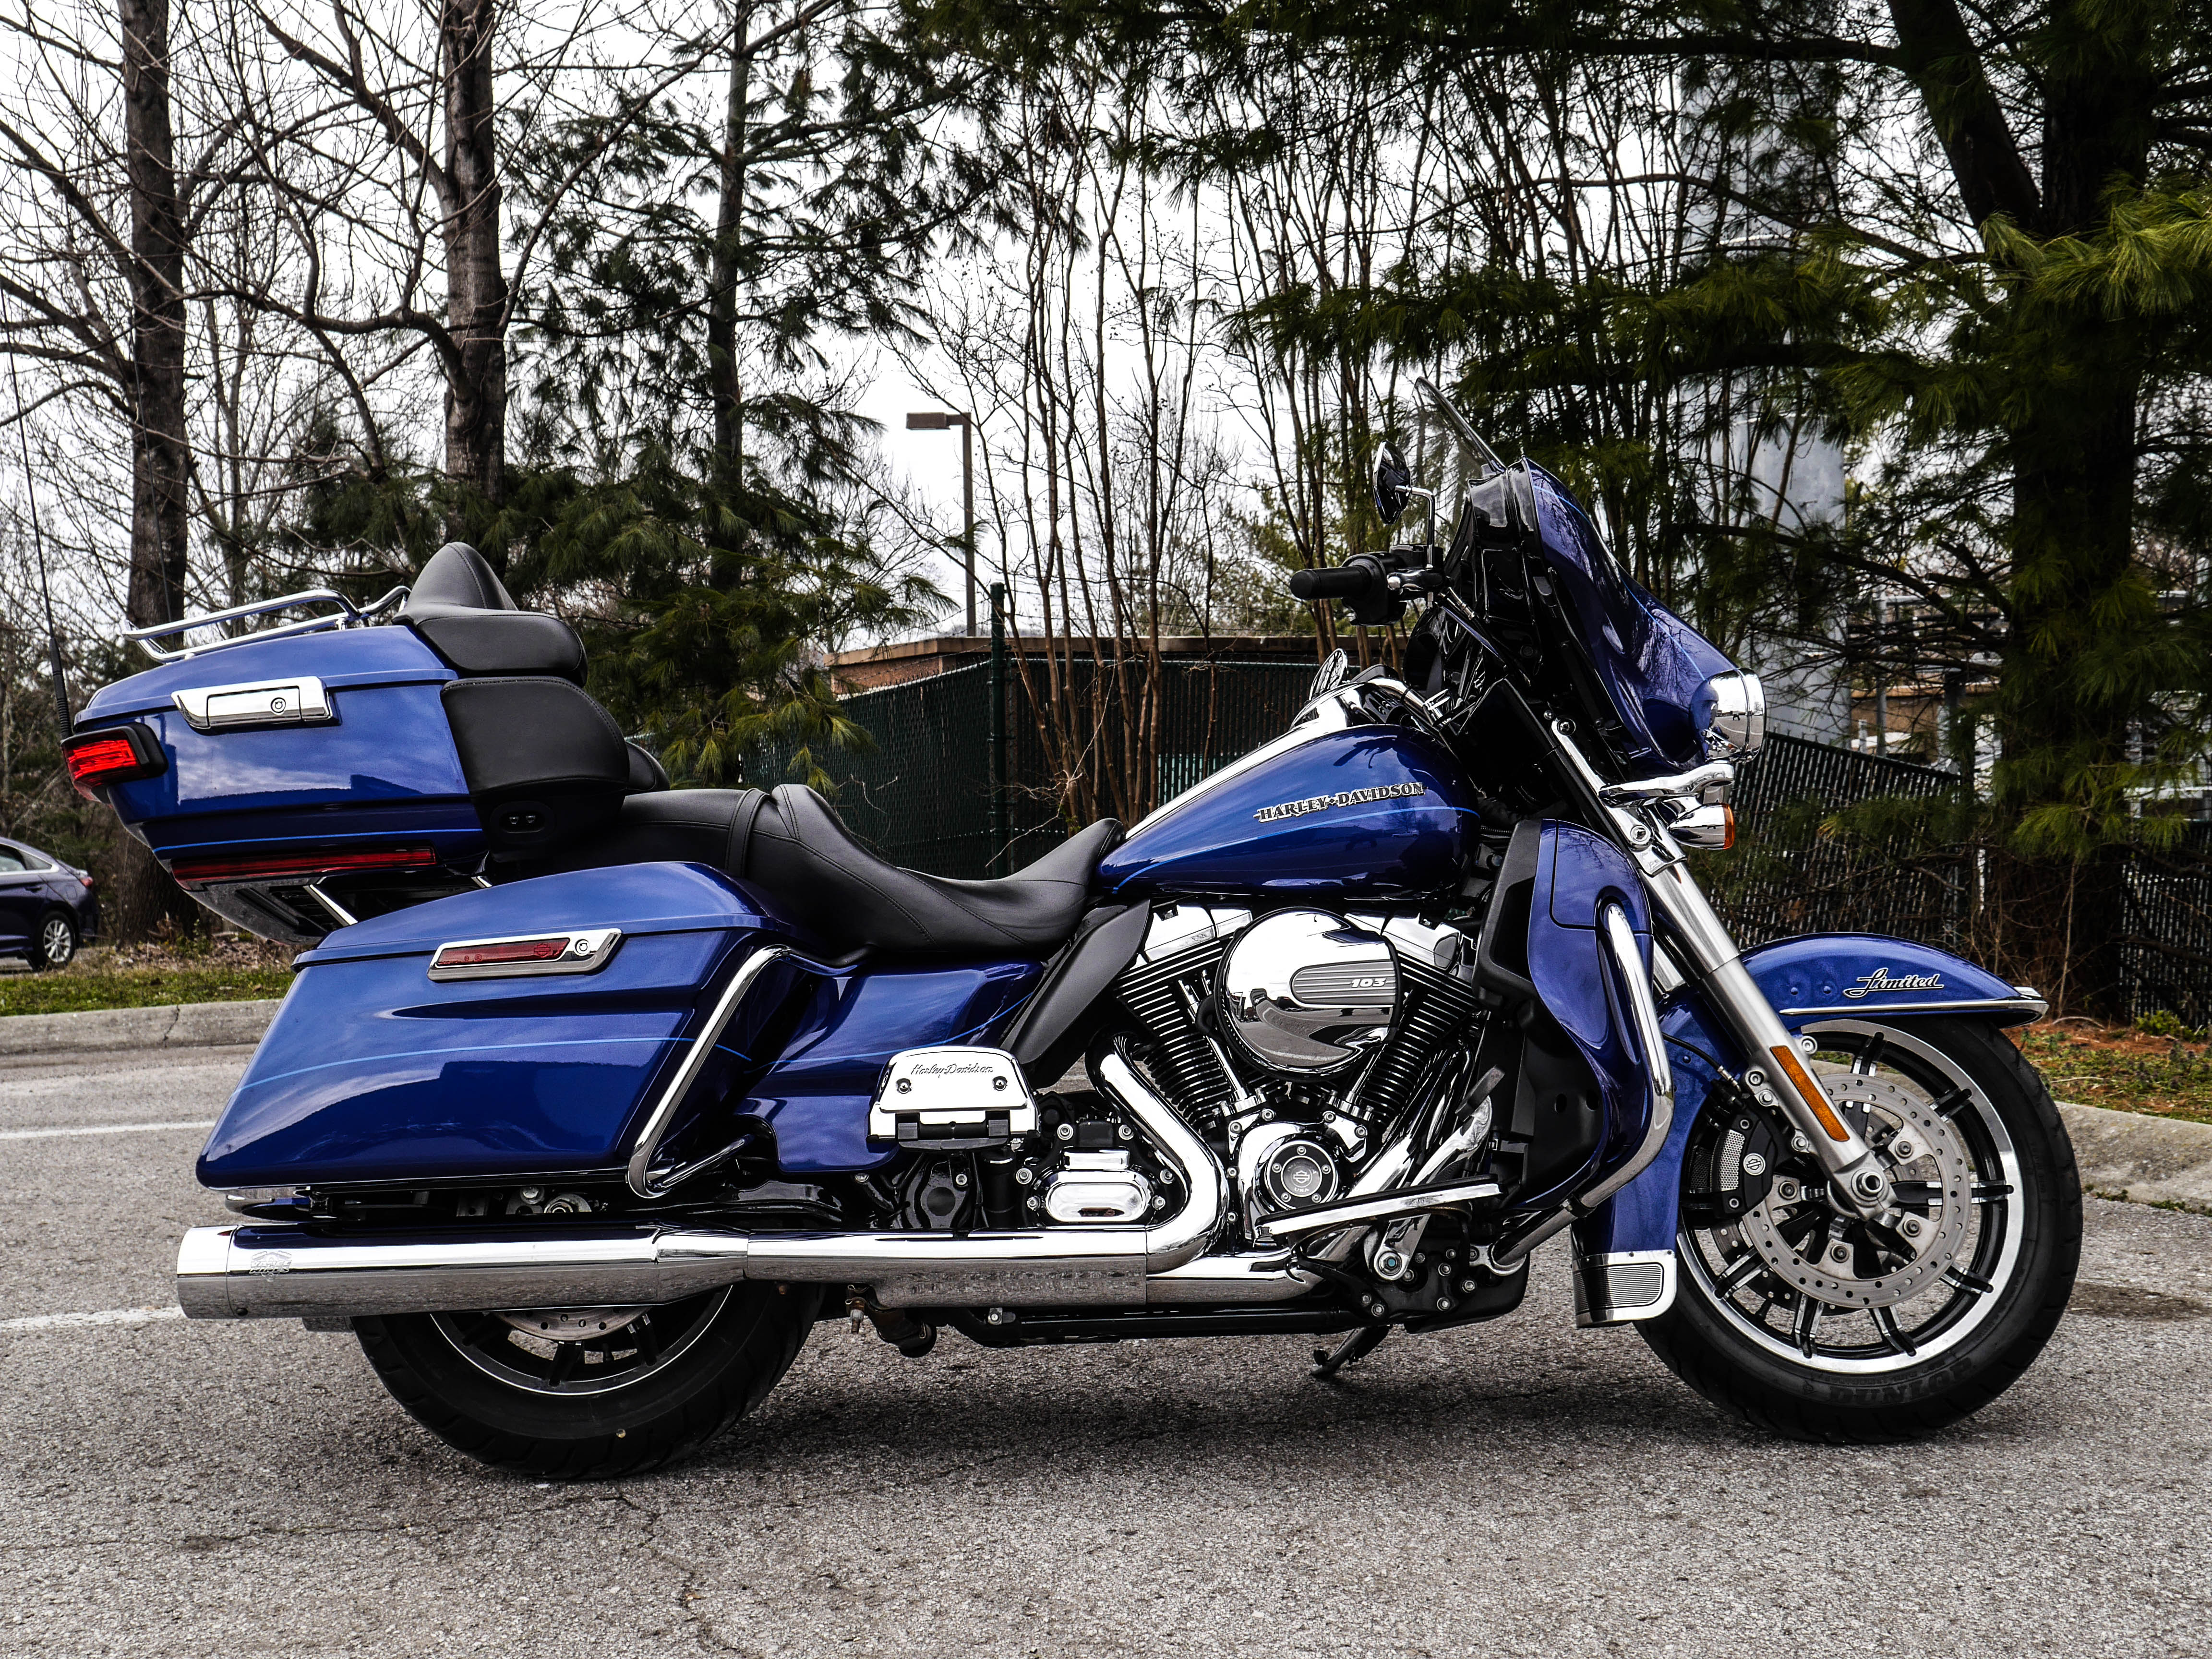 Pre-Owned 2015 Harley-Davidson Touring Electra Glide Ultra Limited